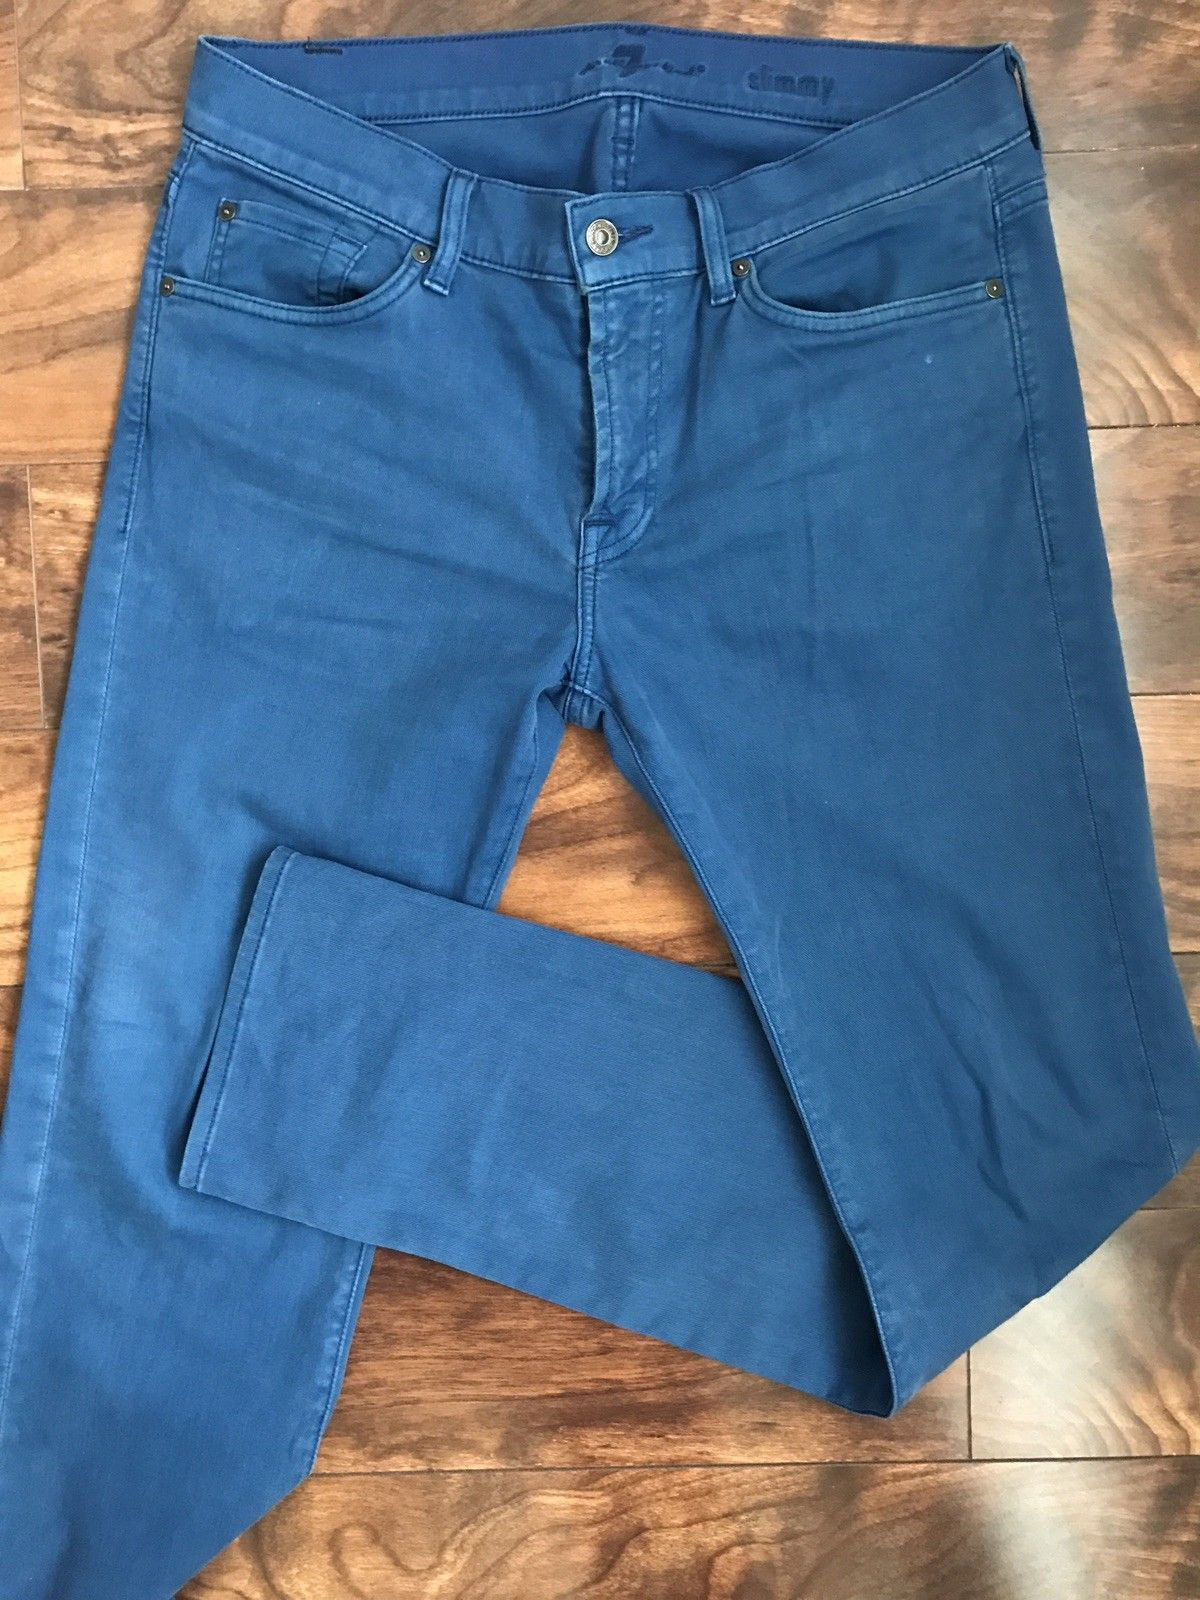 For All 7 Mankind Cotton Mens Regular Fit Blue Jeans Size 32 US